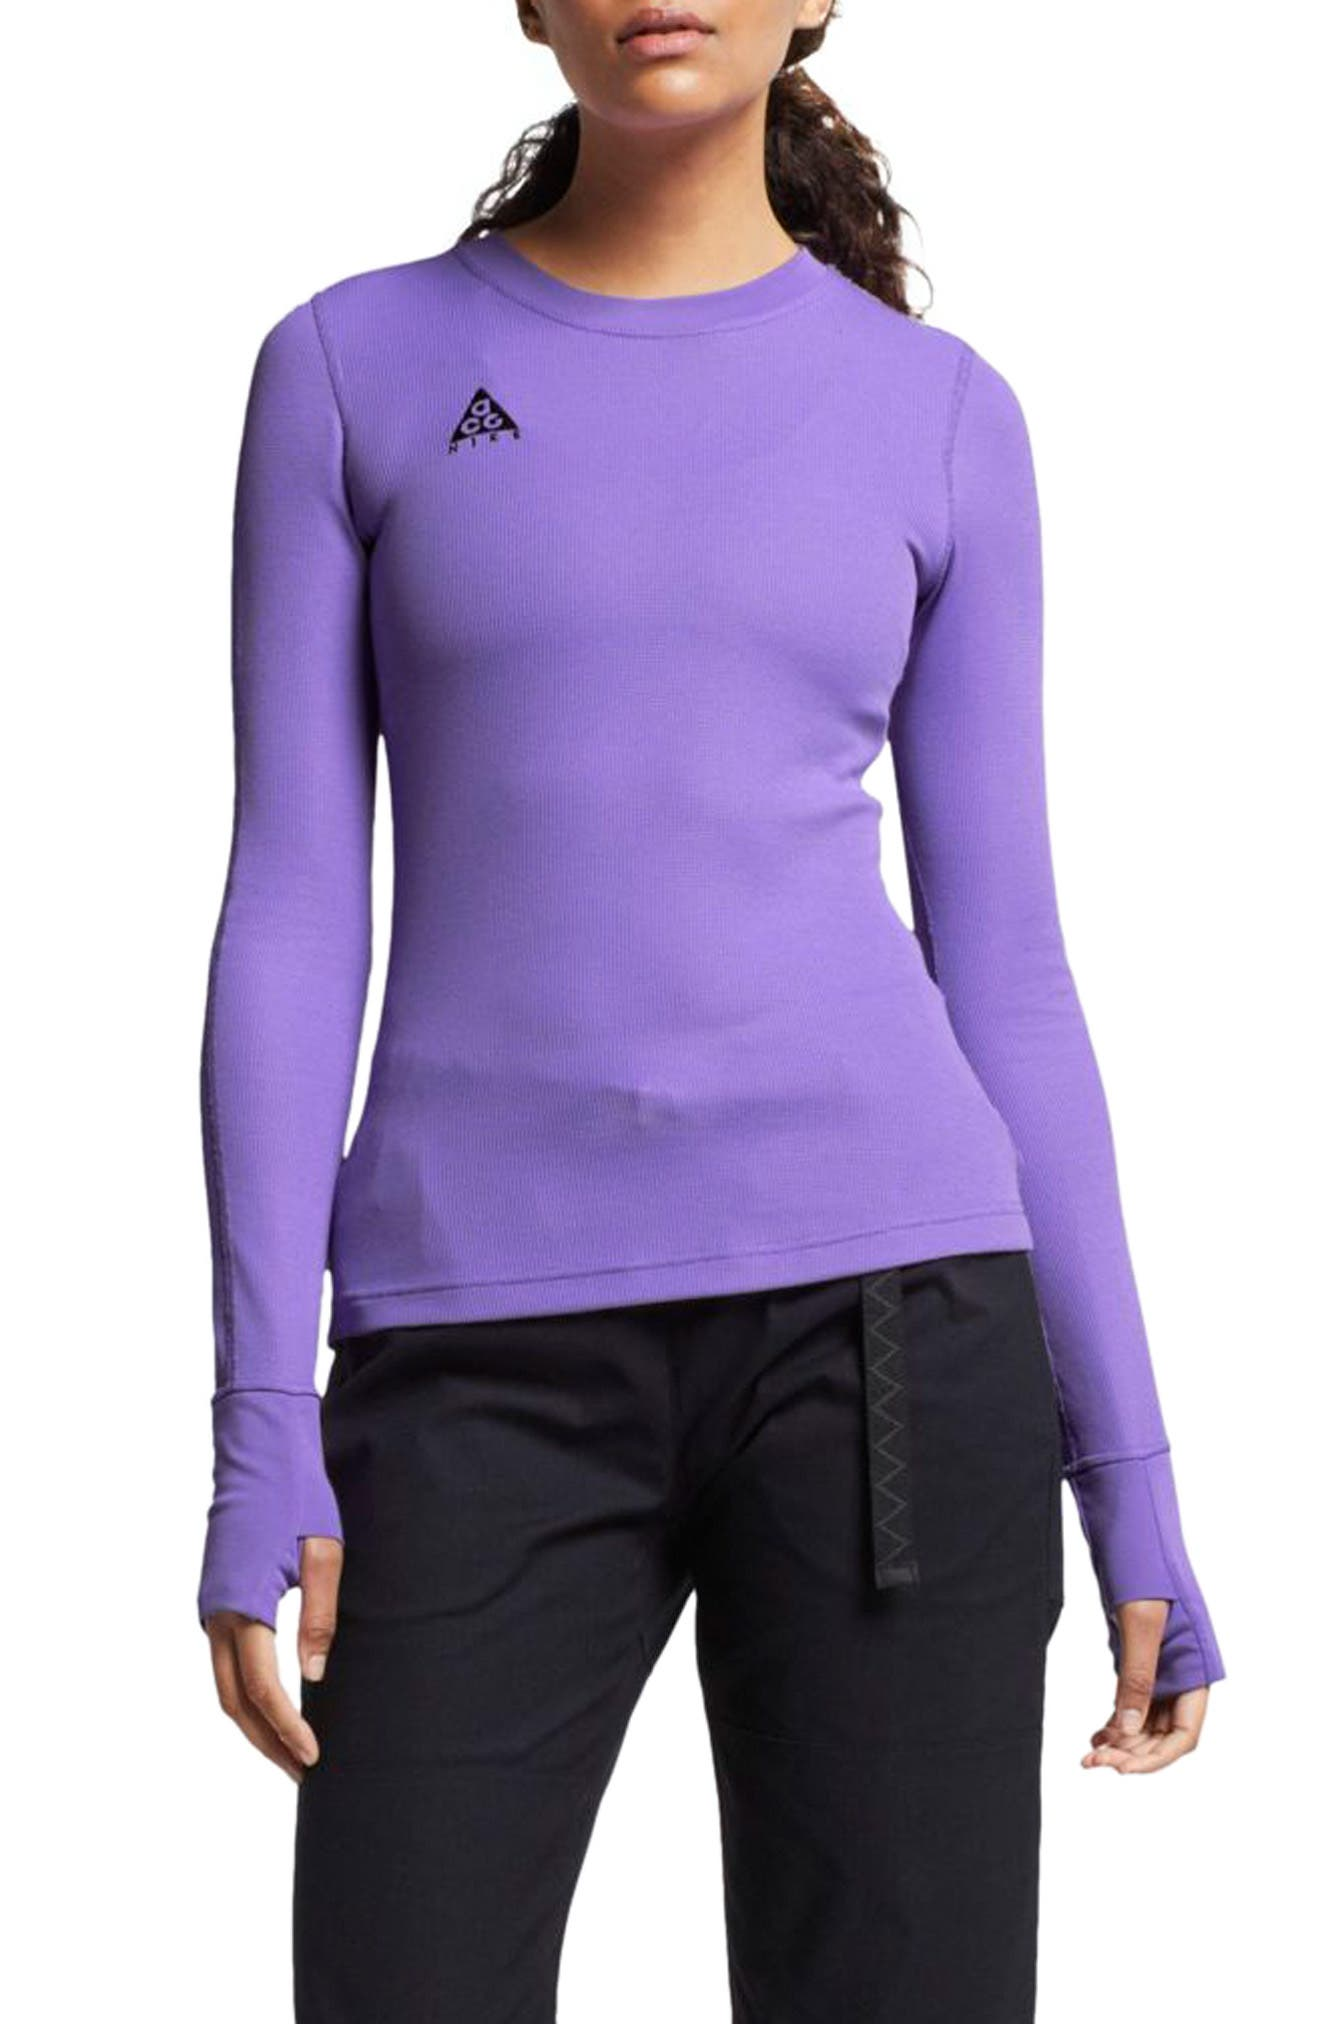 NIKE ACG Women's Waffle Top, Main, color, ATOMIC VIOLET